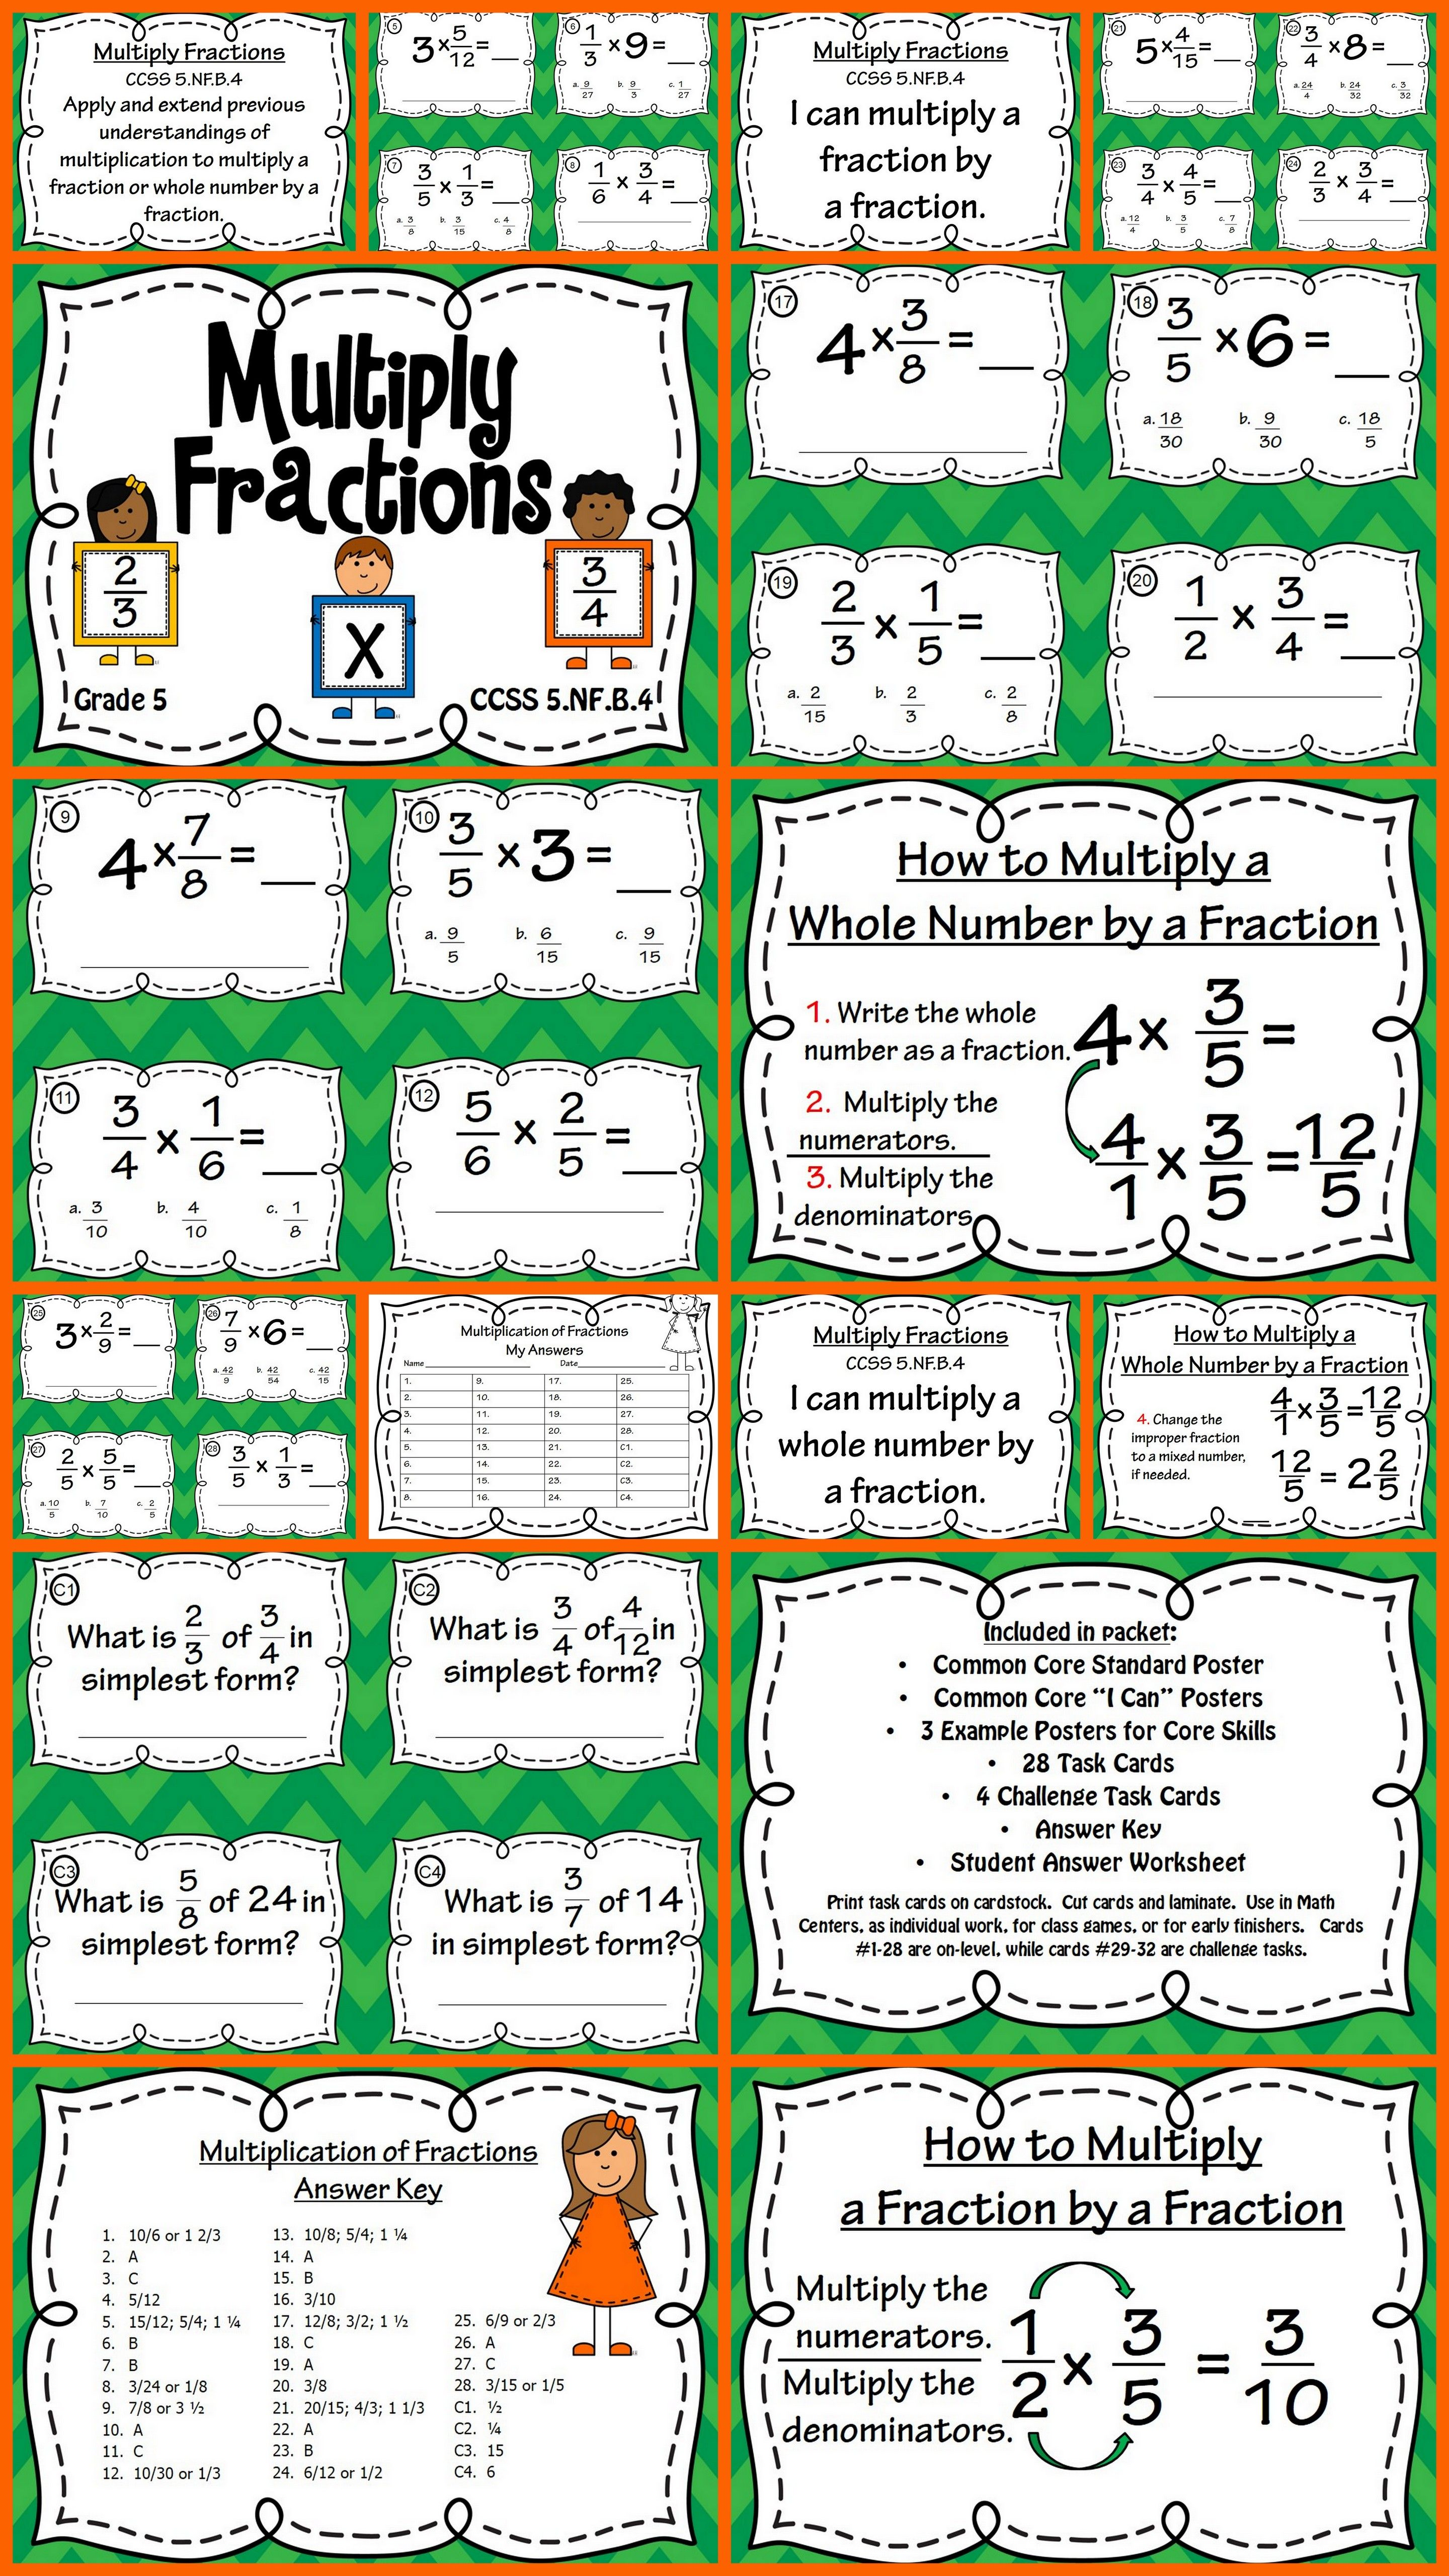 multiplying fractions task cards and poster set - fraction